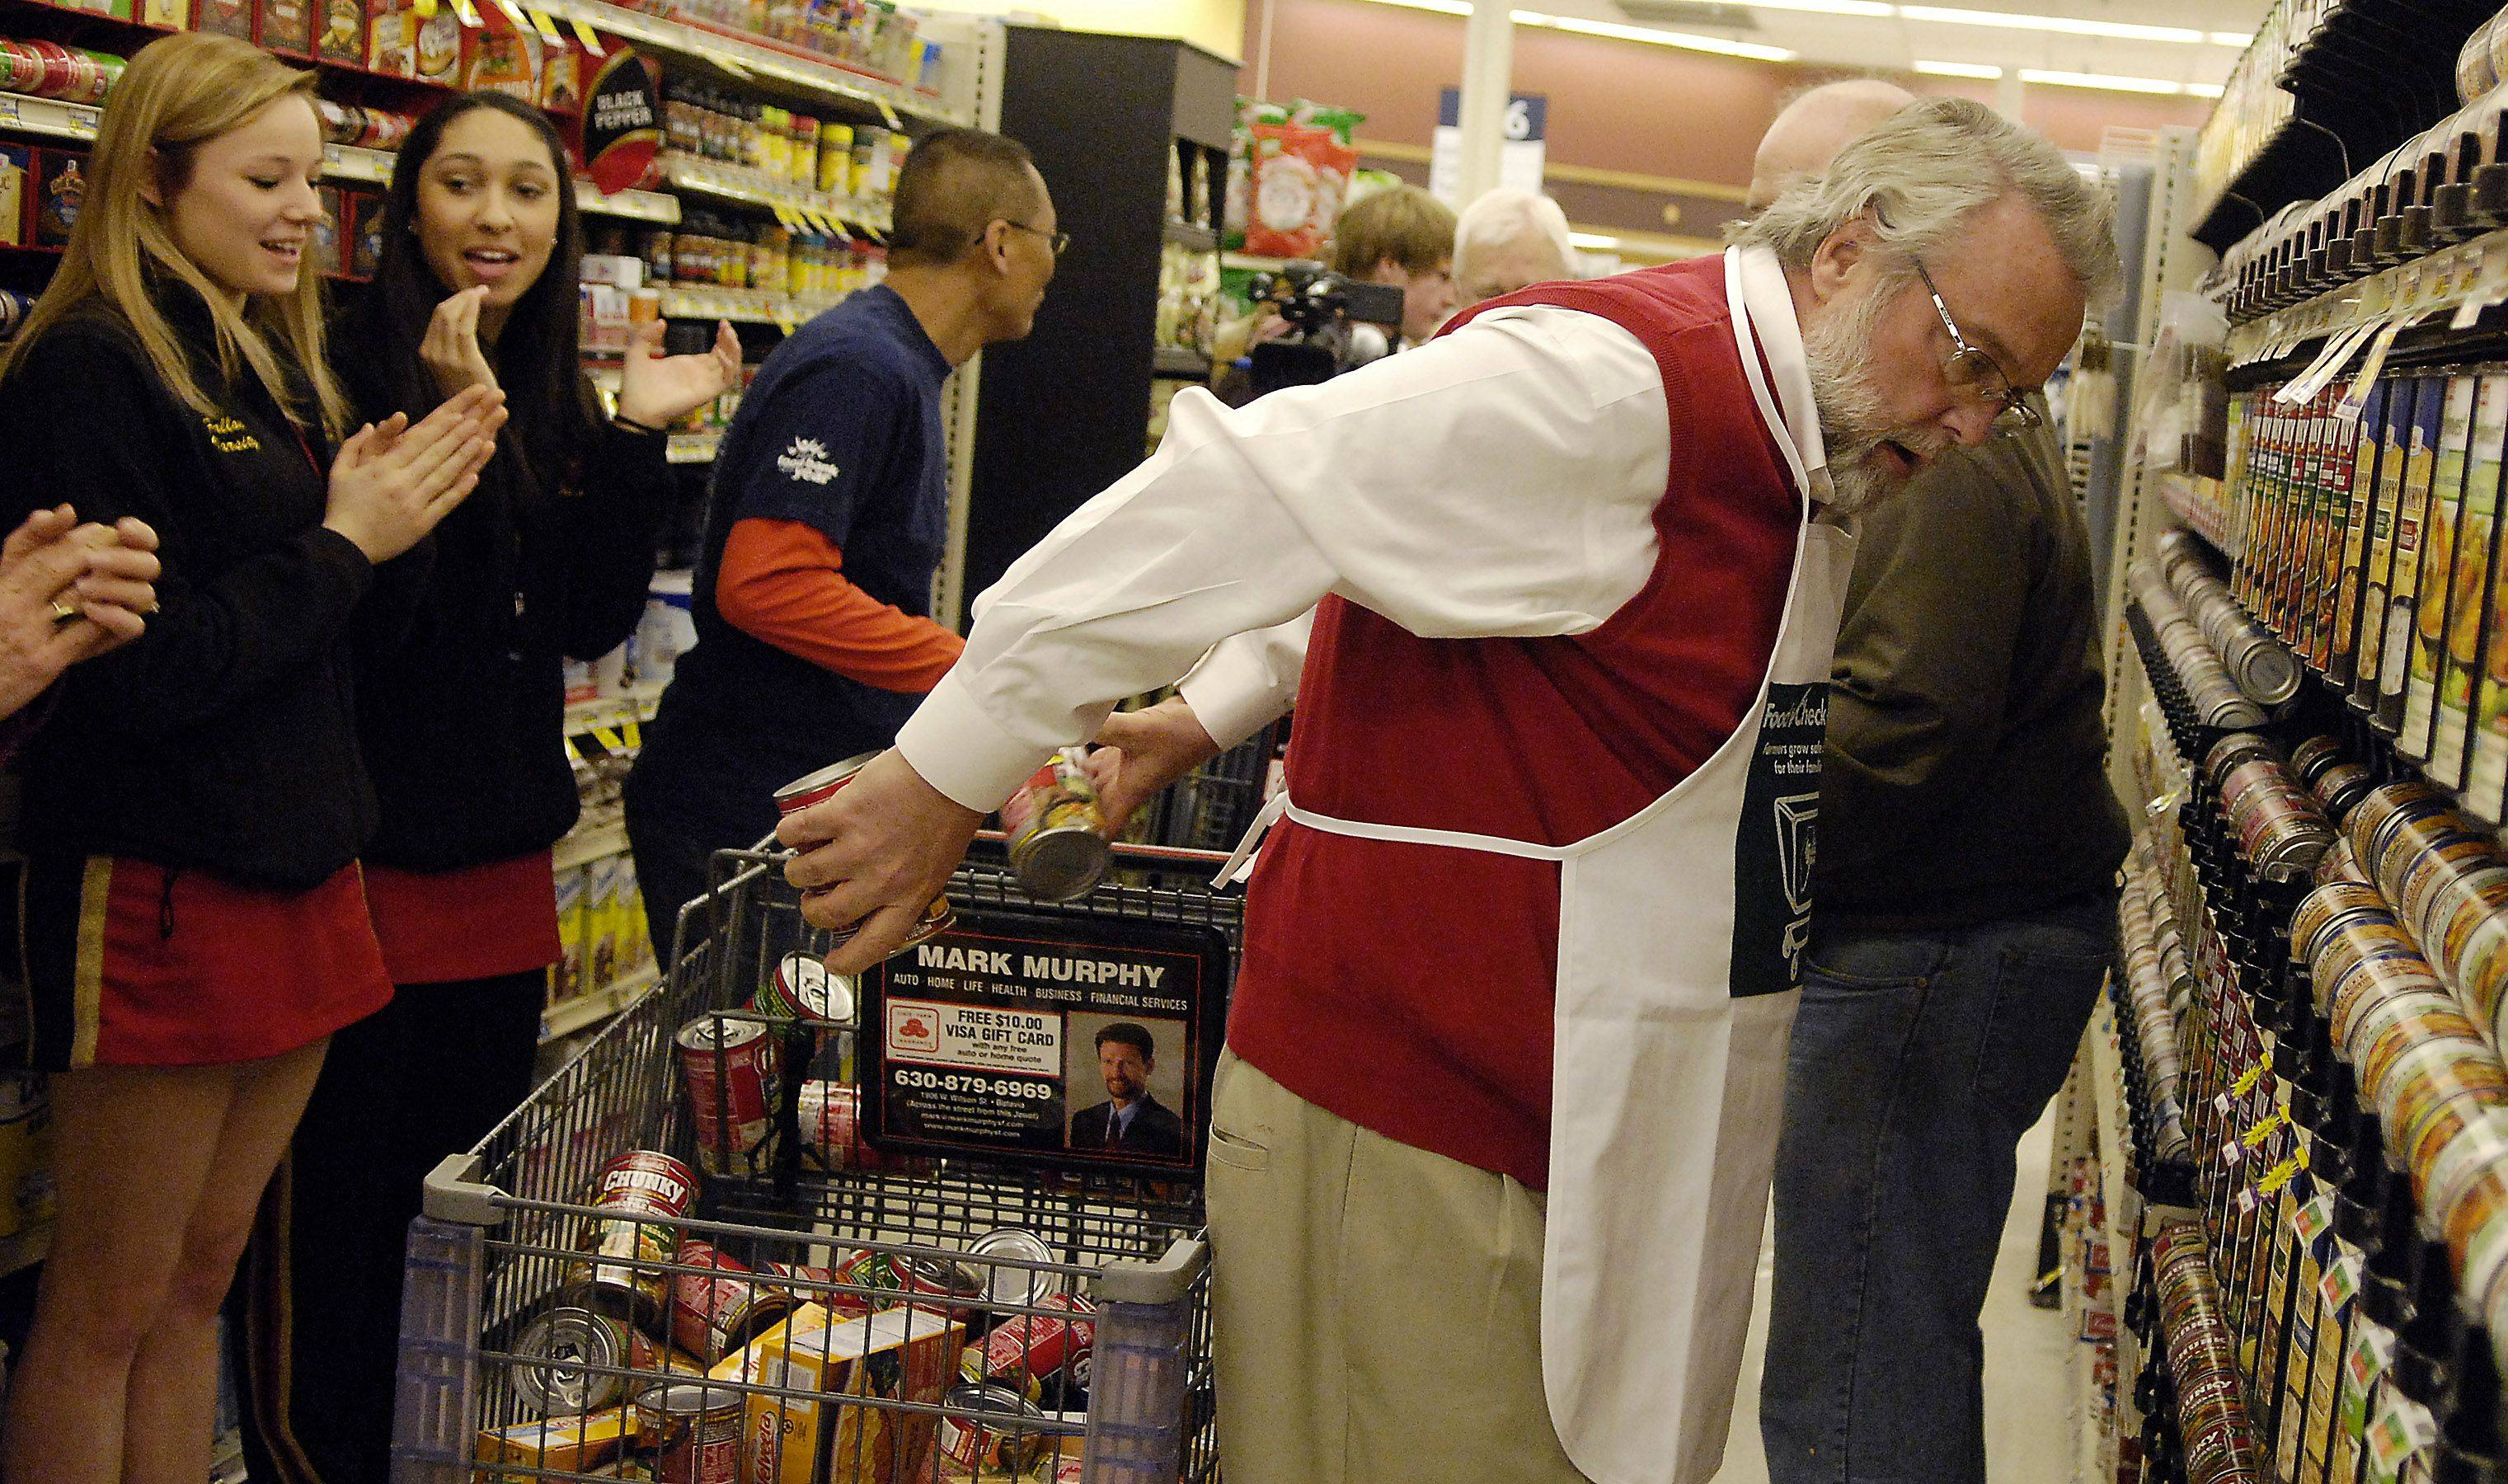 Mayor Tom Weisner of Aurora uses his own special method to fill his cart as quickly as possible during the 10th-annual Farm Bureau Food Check-Out Challenge Jewel in Batavia Friday. He collected $1001.05 in food for the Aurora Interfaith Food Pantry.